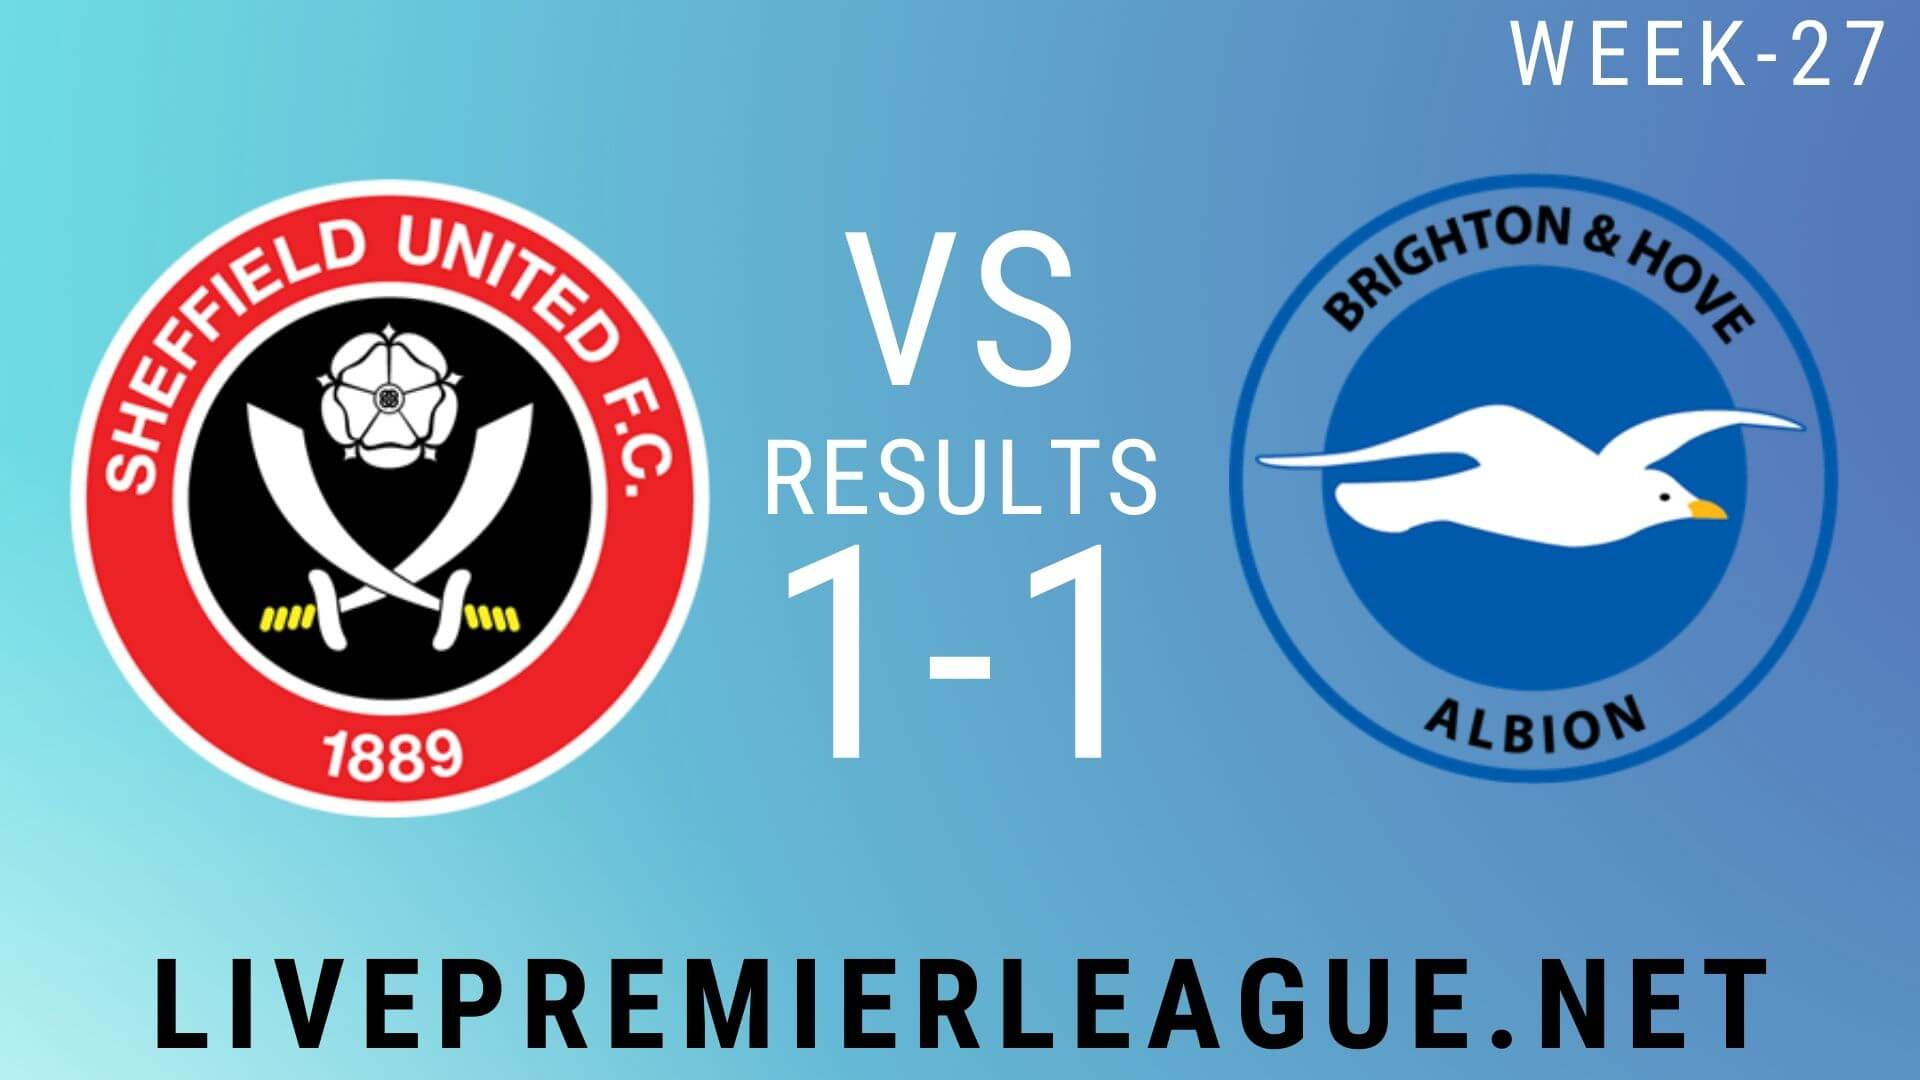 Sheffield United Vs Brighton and Hove Albion | Week 27 Result 2020